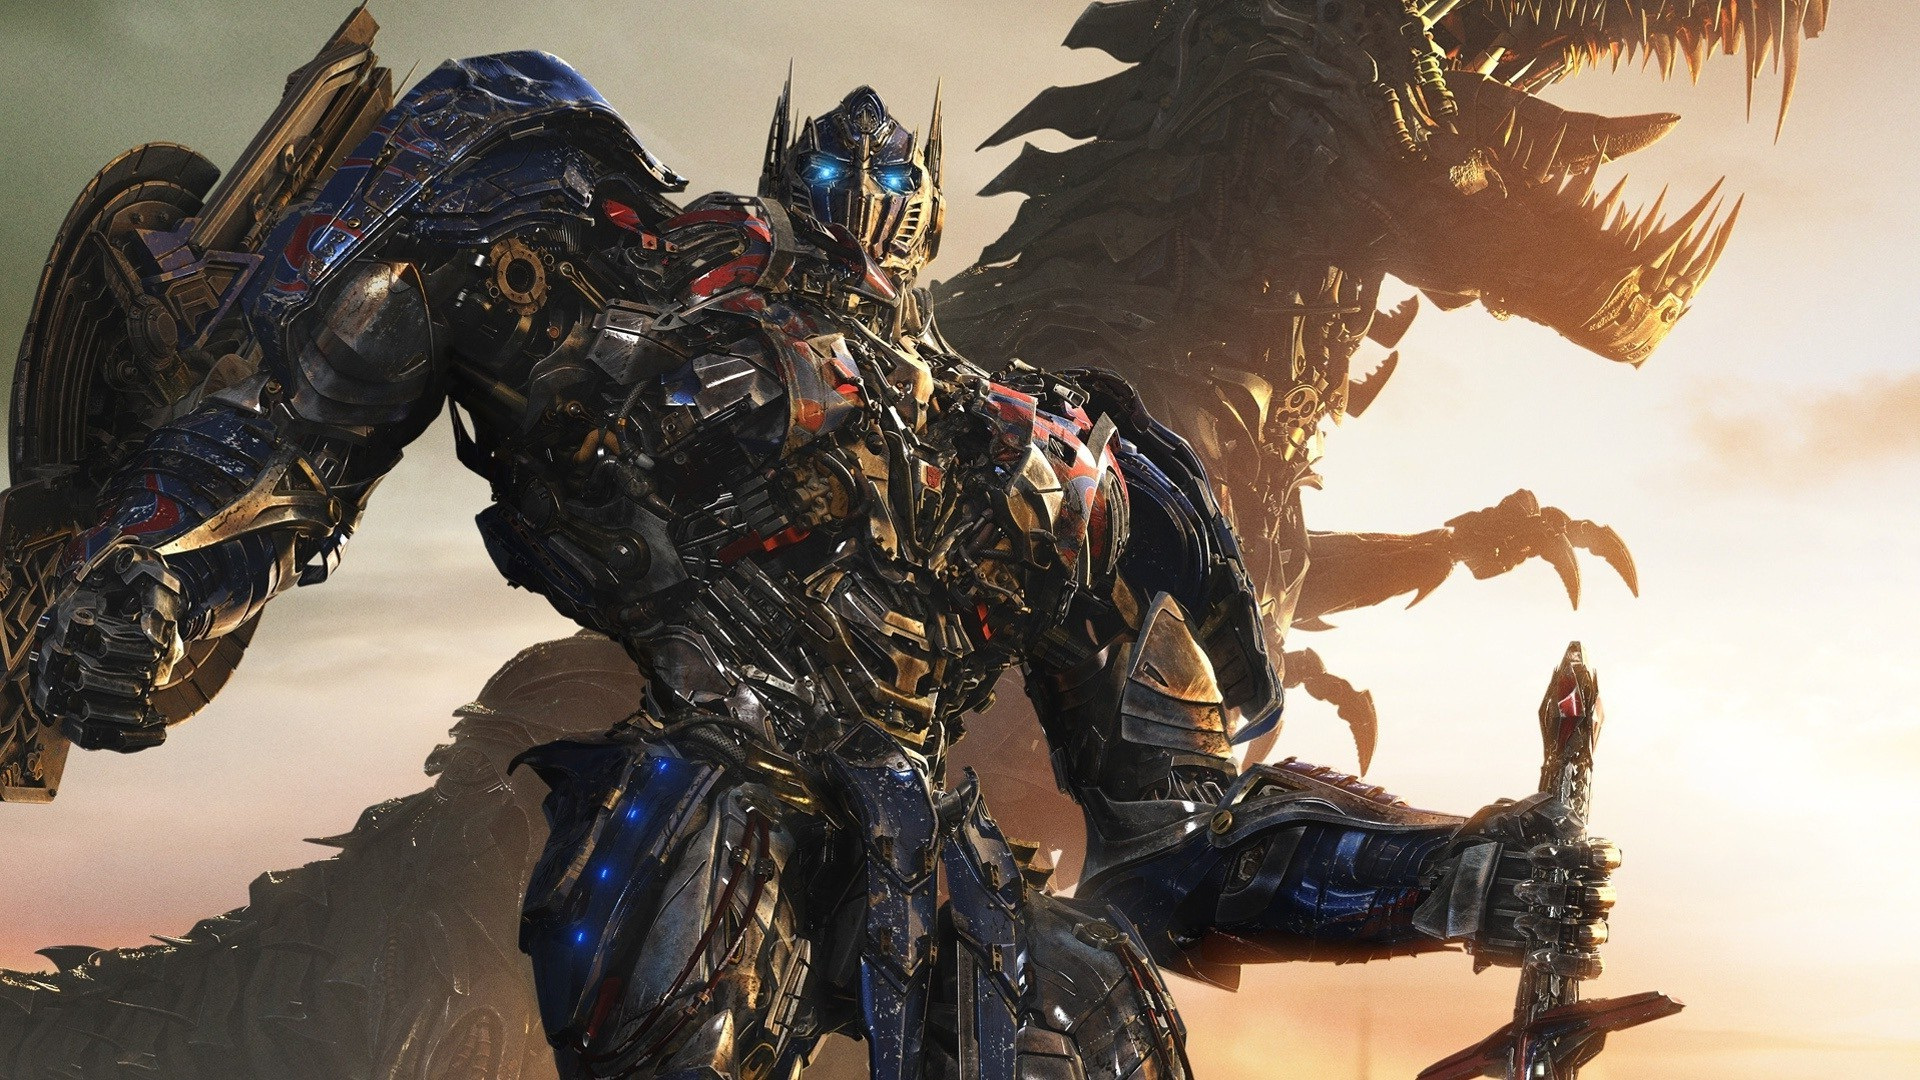 Cars Movie Hd Wallpapers 1080p Transformers Transformers Age Of Extinction Optimus